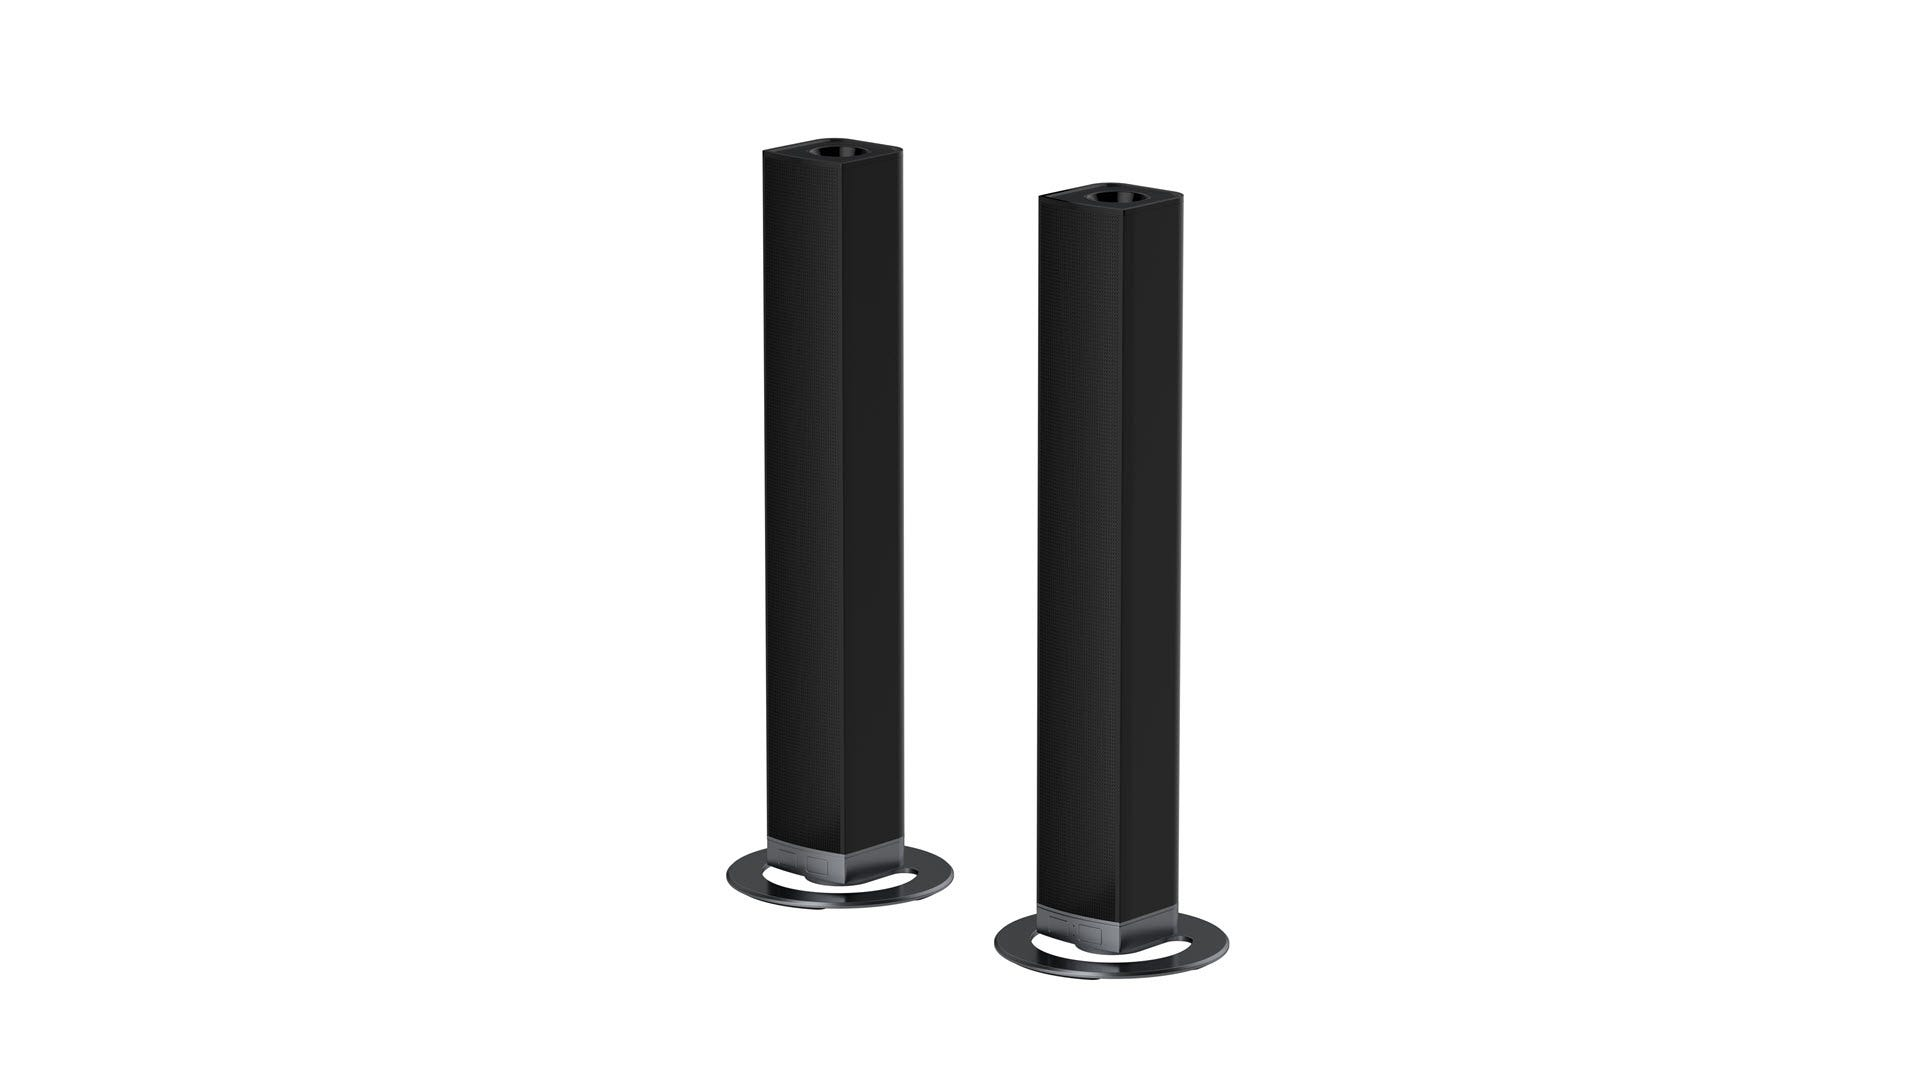 A soundbar split into two pieces.